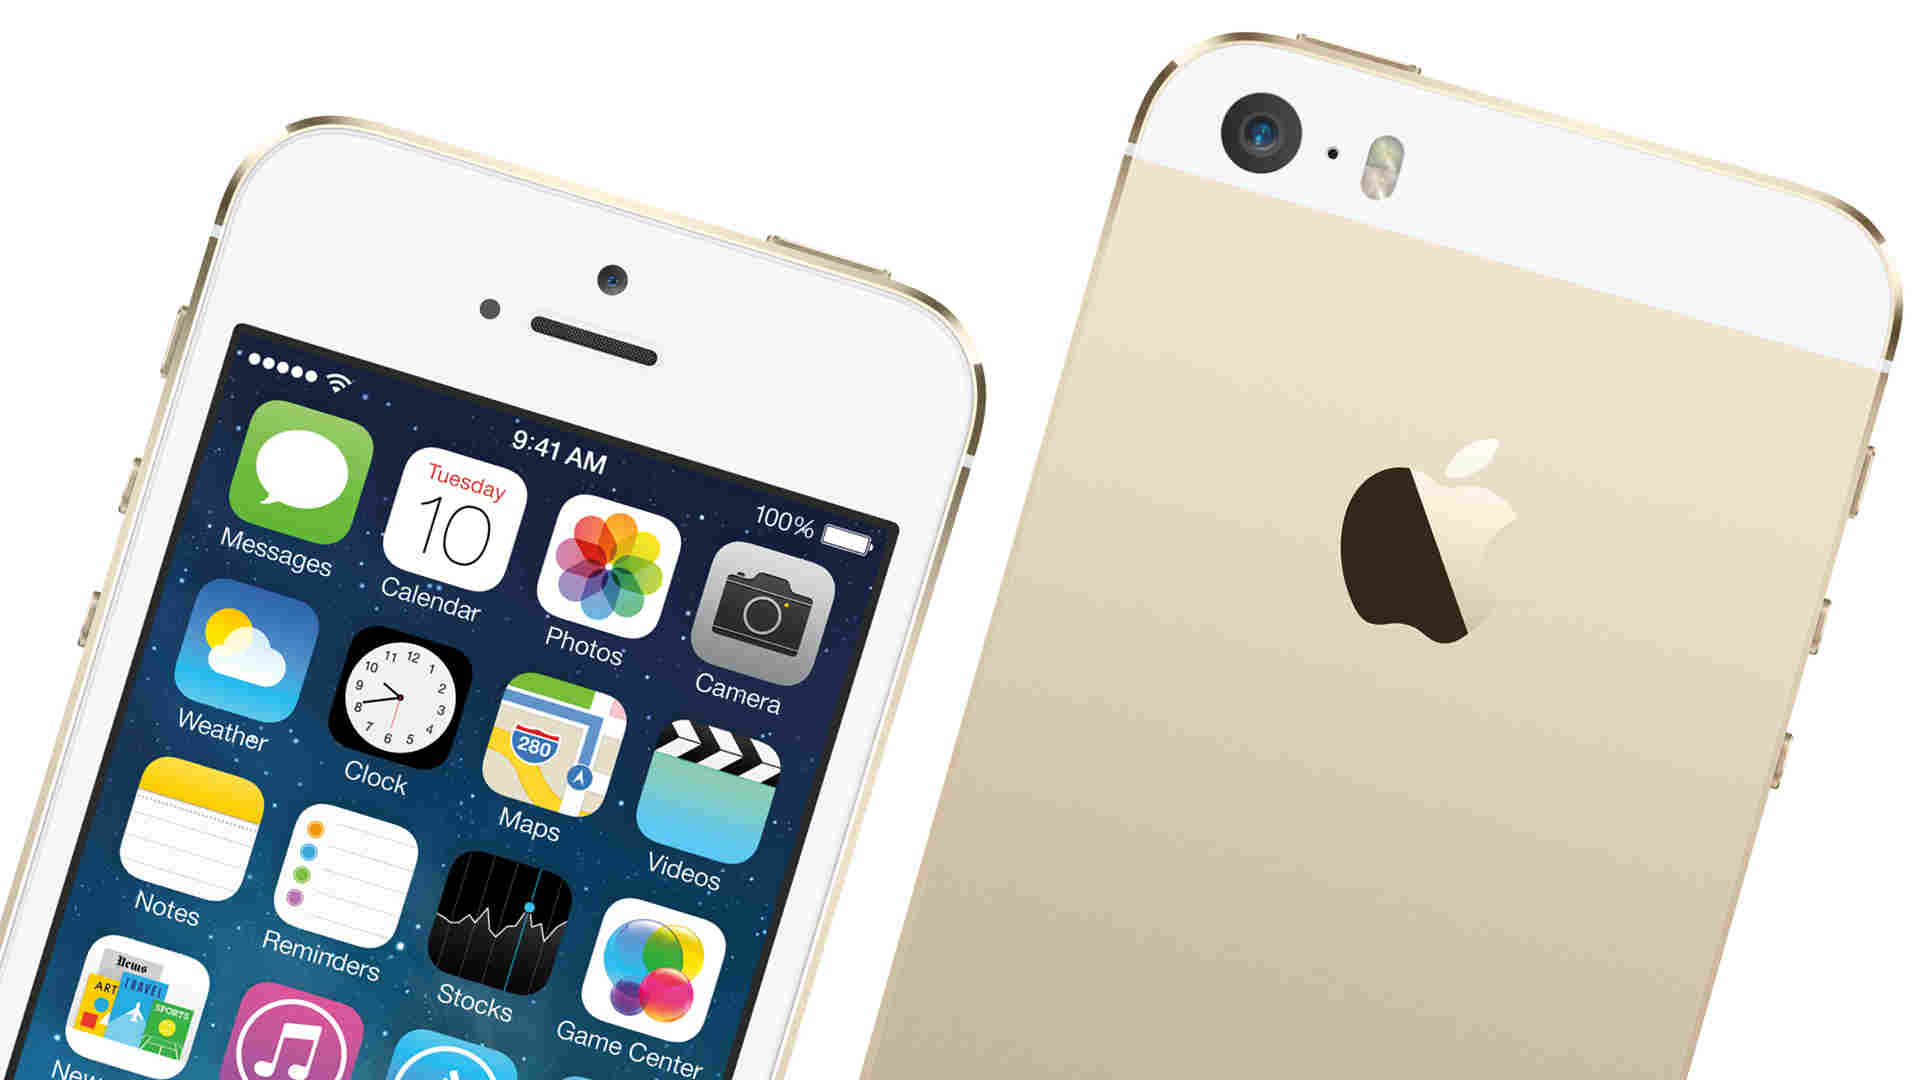 5s iphone price apple iphone 5s price in nepal gadgets in nepal 2090